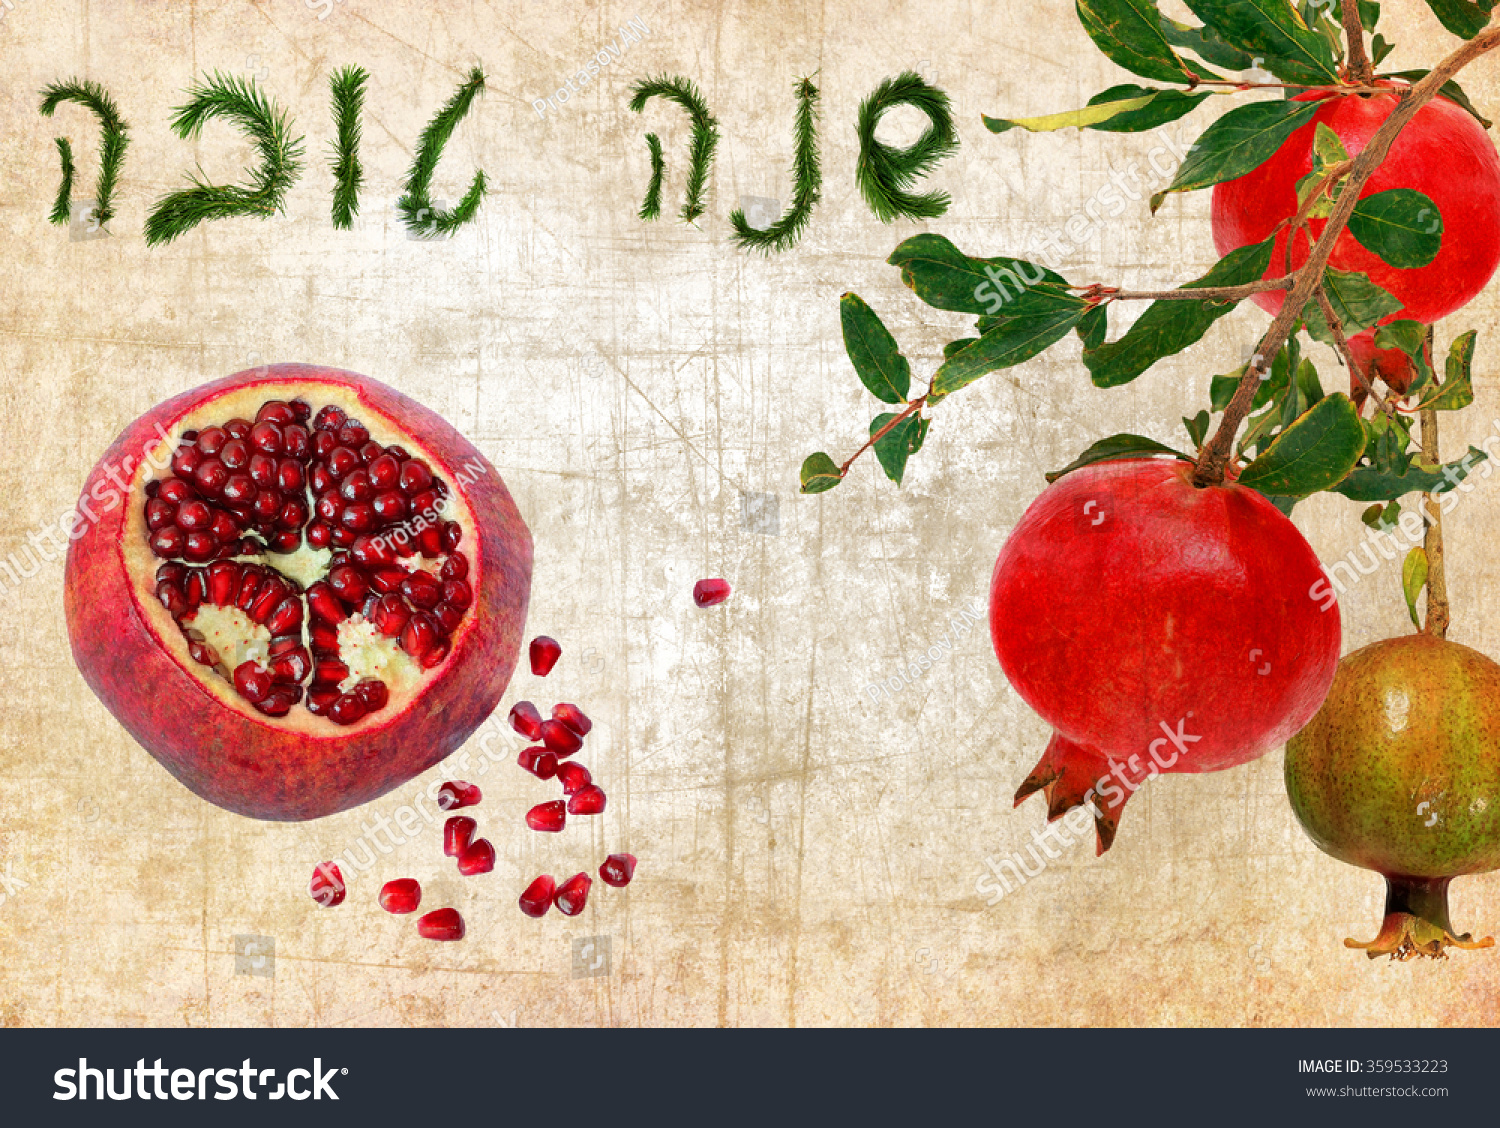 Textured Old Paper Background Pomegranate Fruit Stock Photo Edit